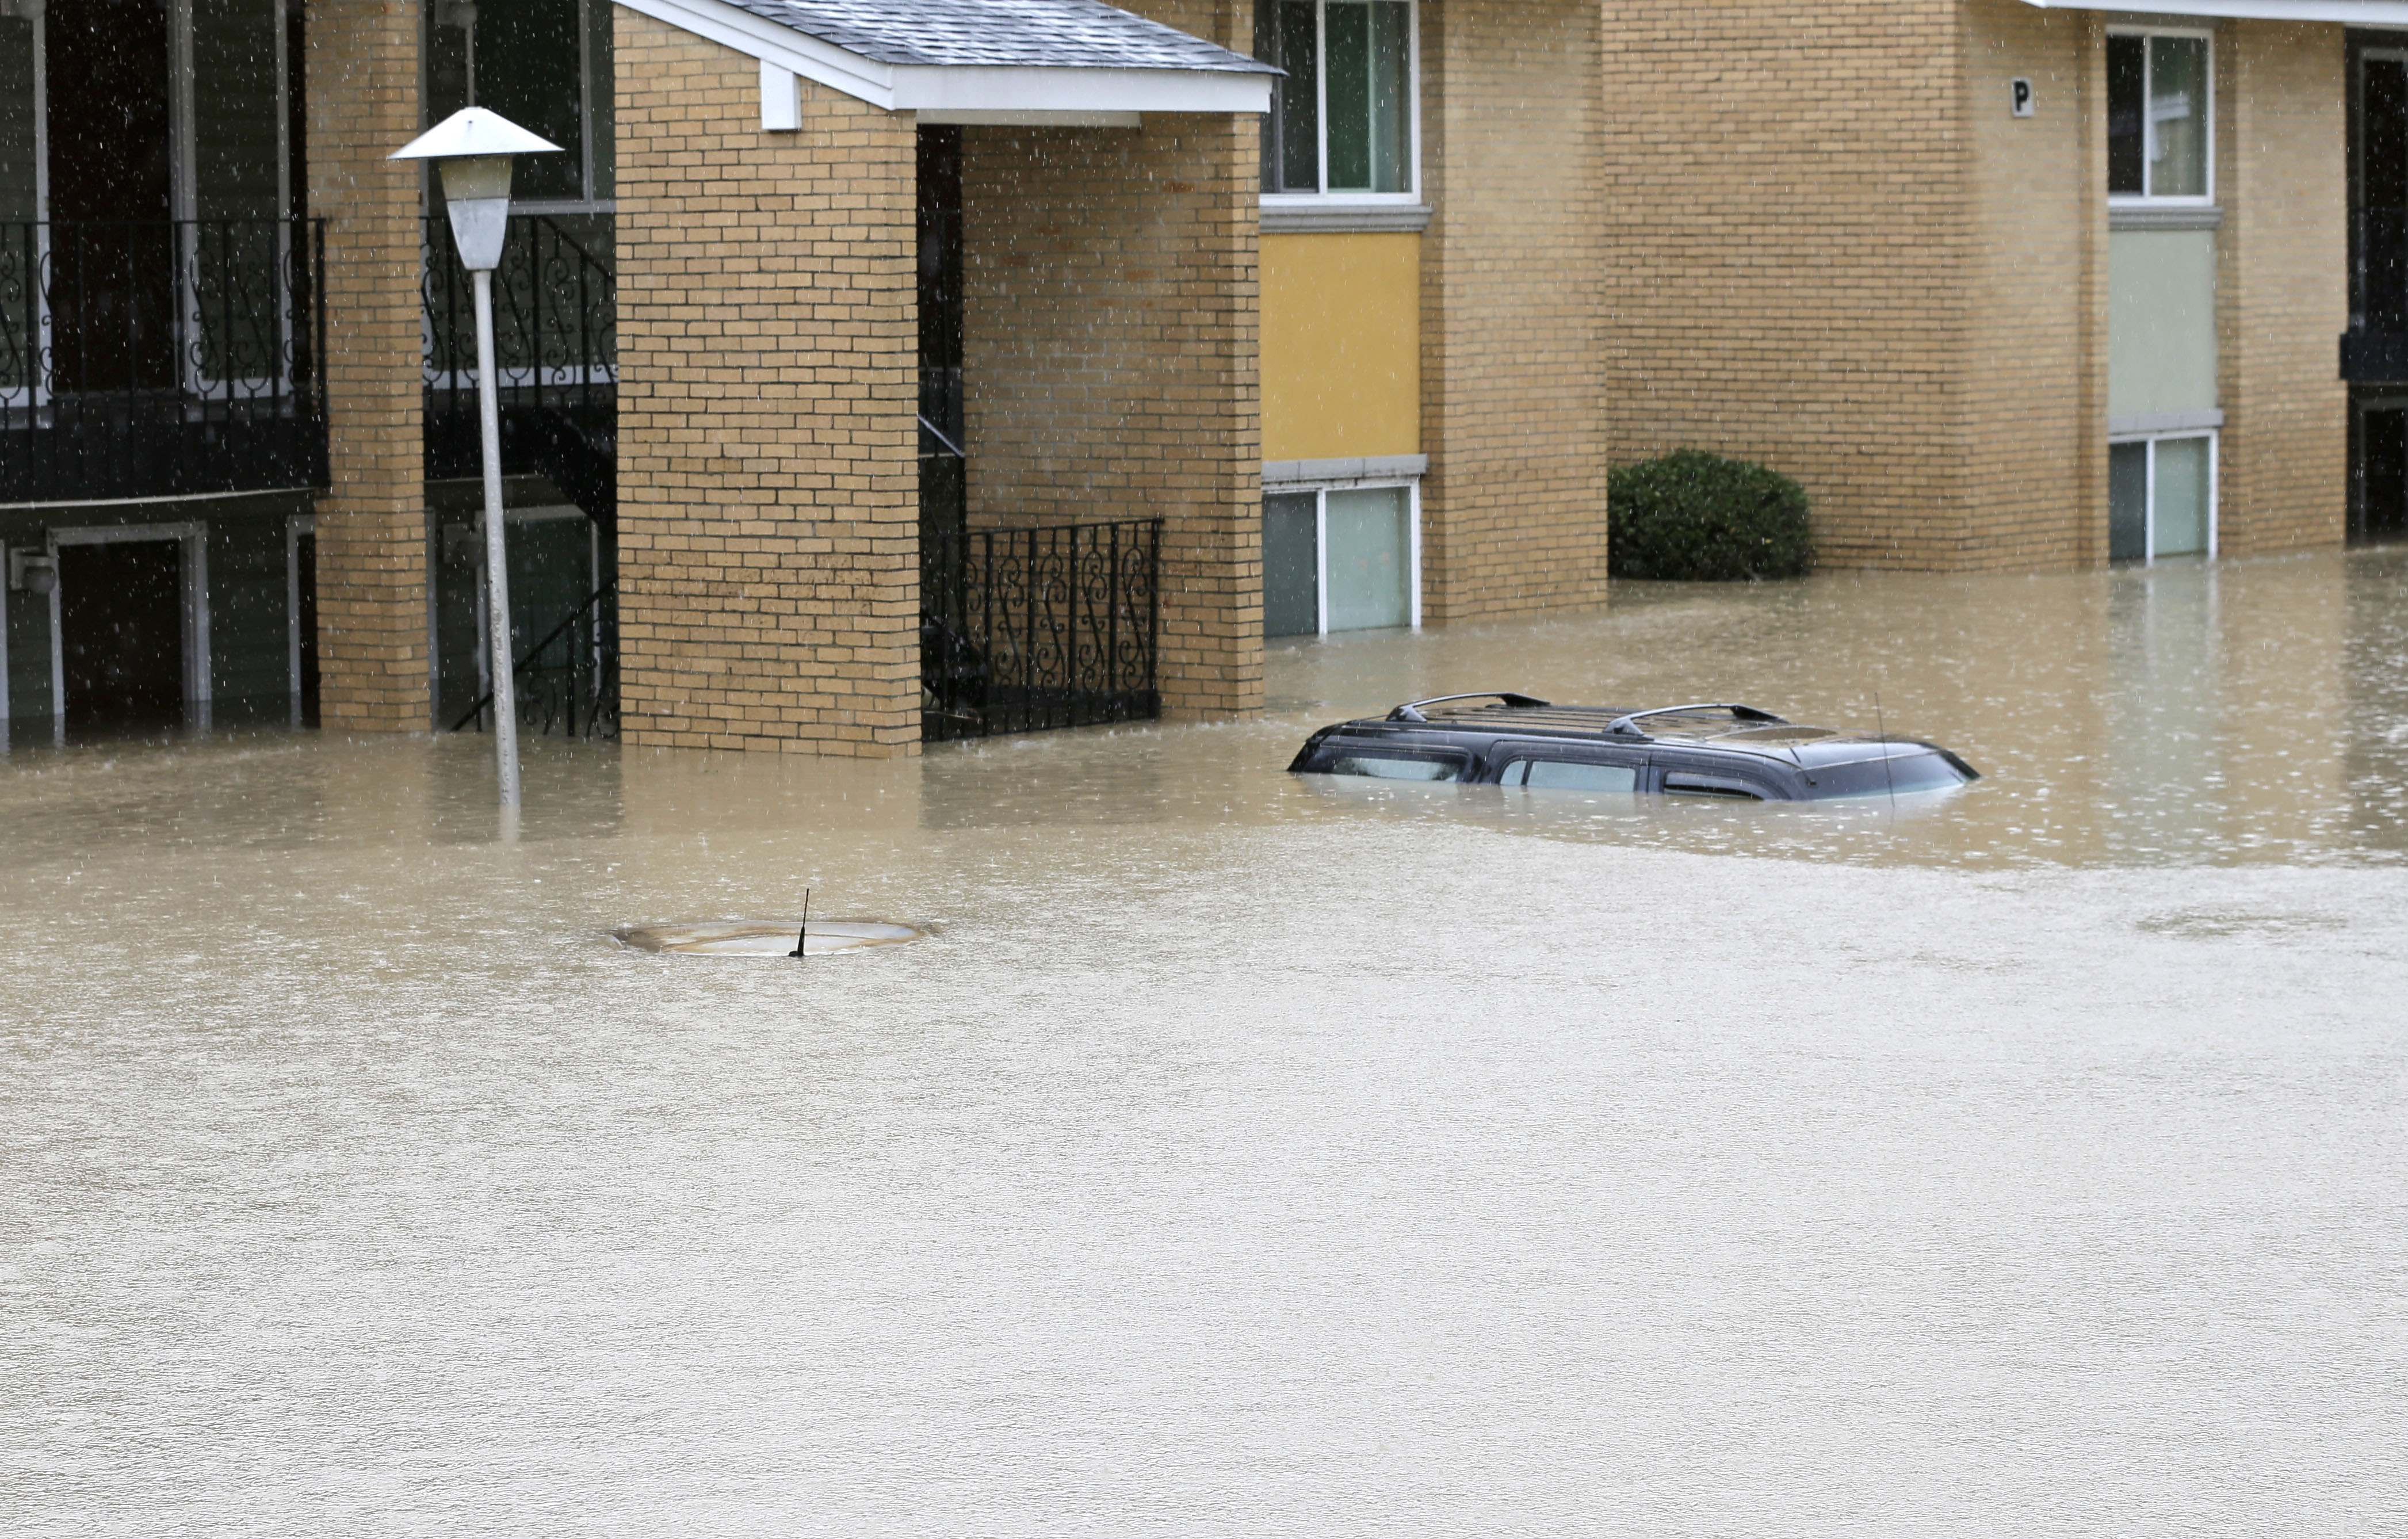 Flood waters engulf cars at an apartment complex in Columbia, S.C., Sunday, Oct. 4, 2015.